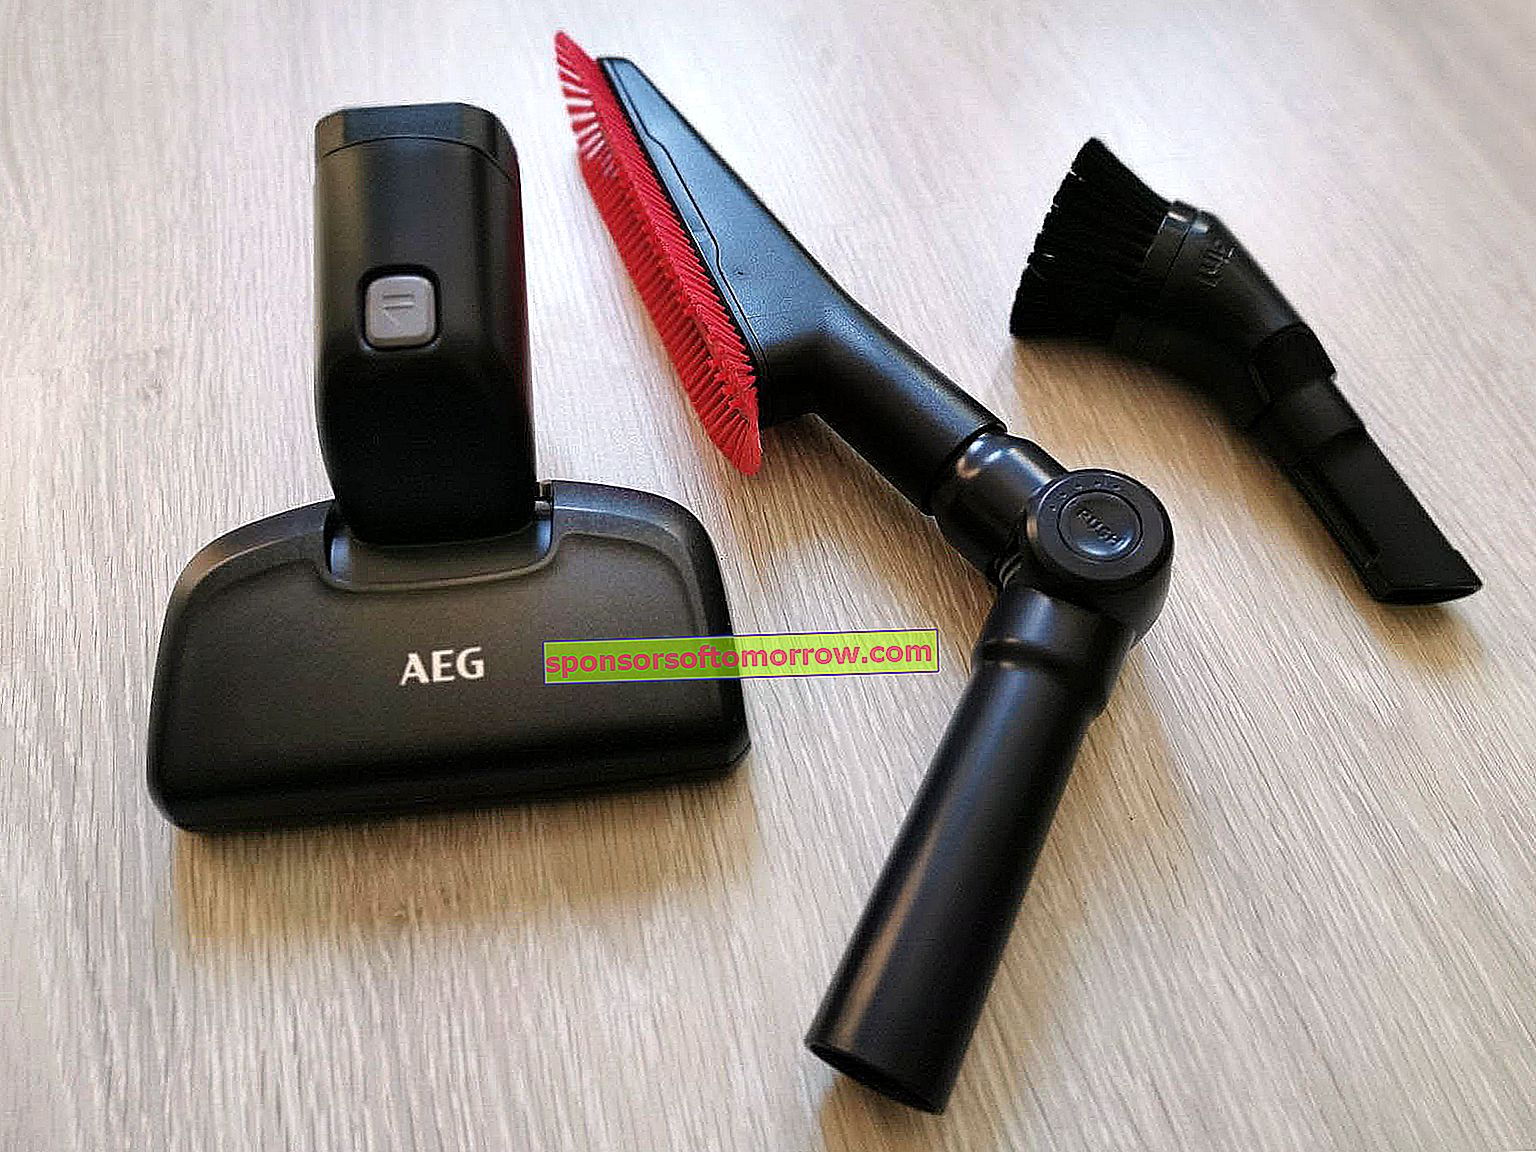 AEG FX9 vacuum cleaner accessories